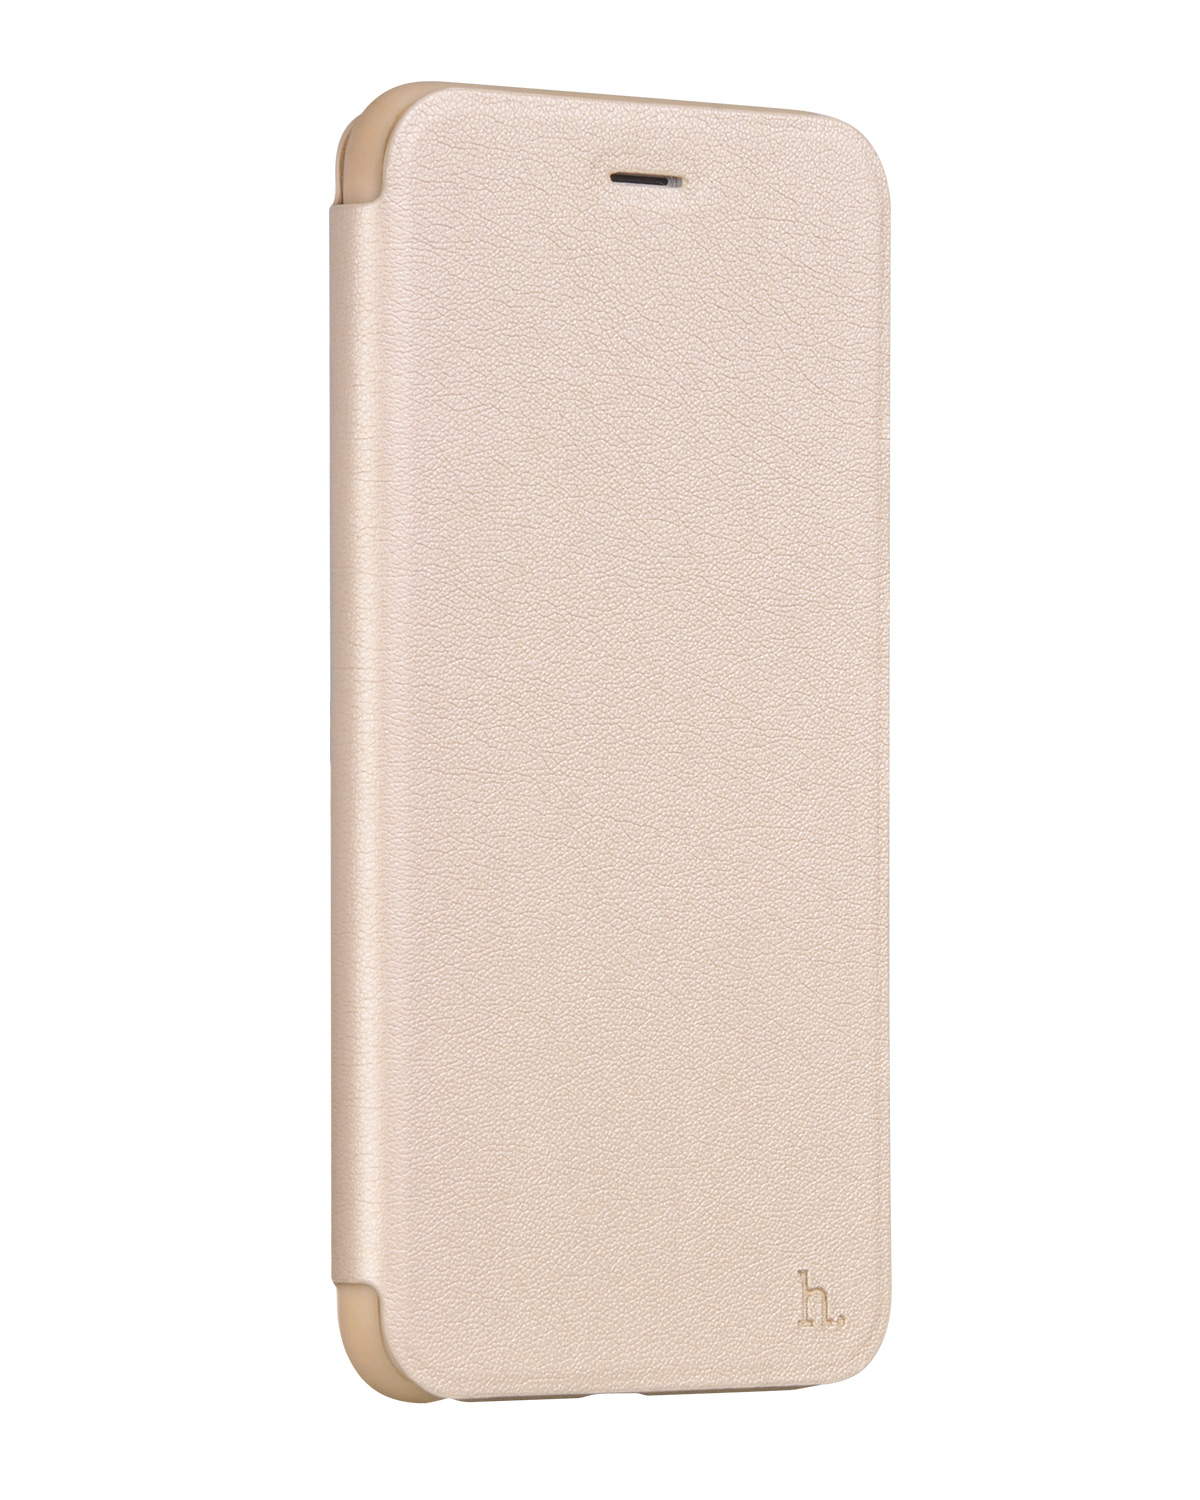 Pouzdro HOCO Nappa Leather – Gold pro Apple iPhone 6/6S